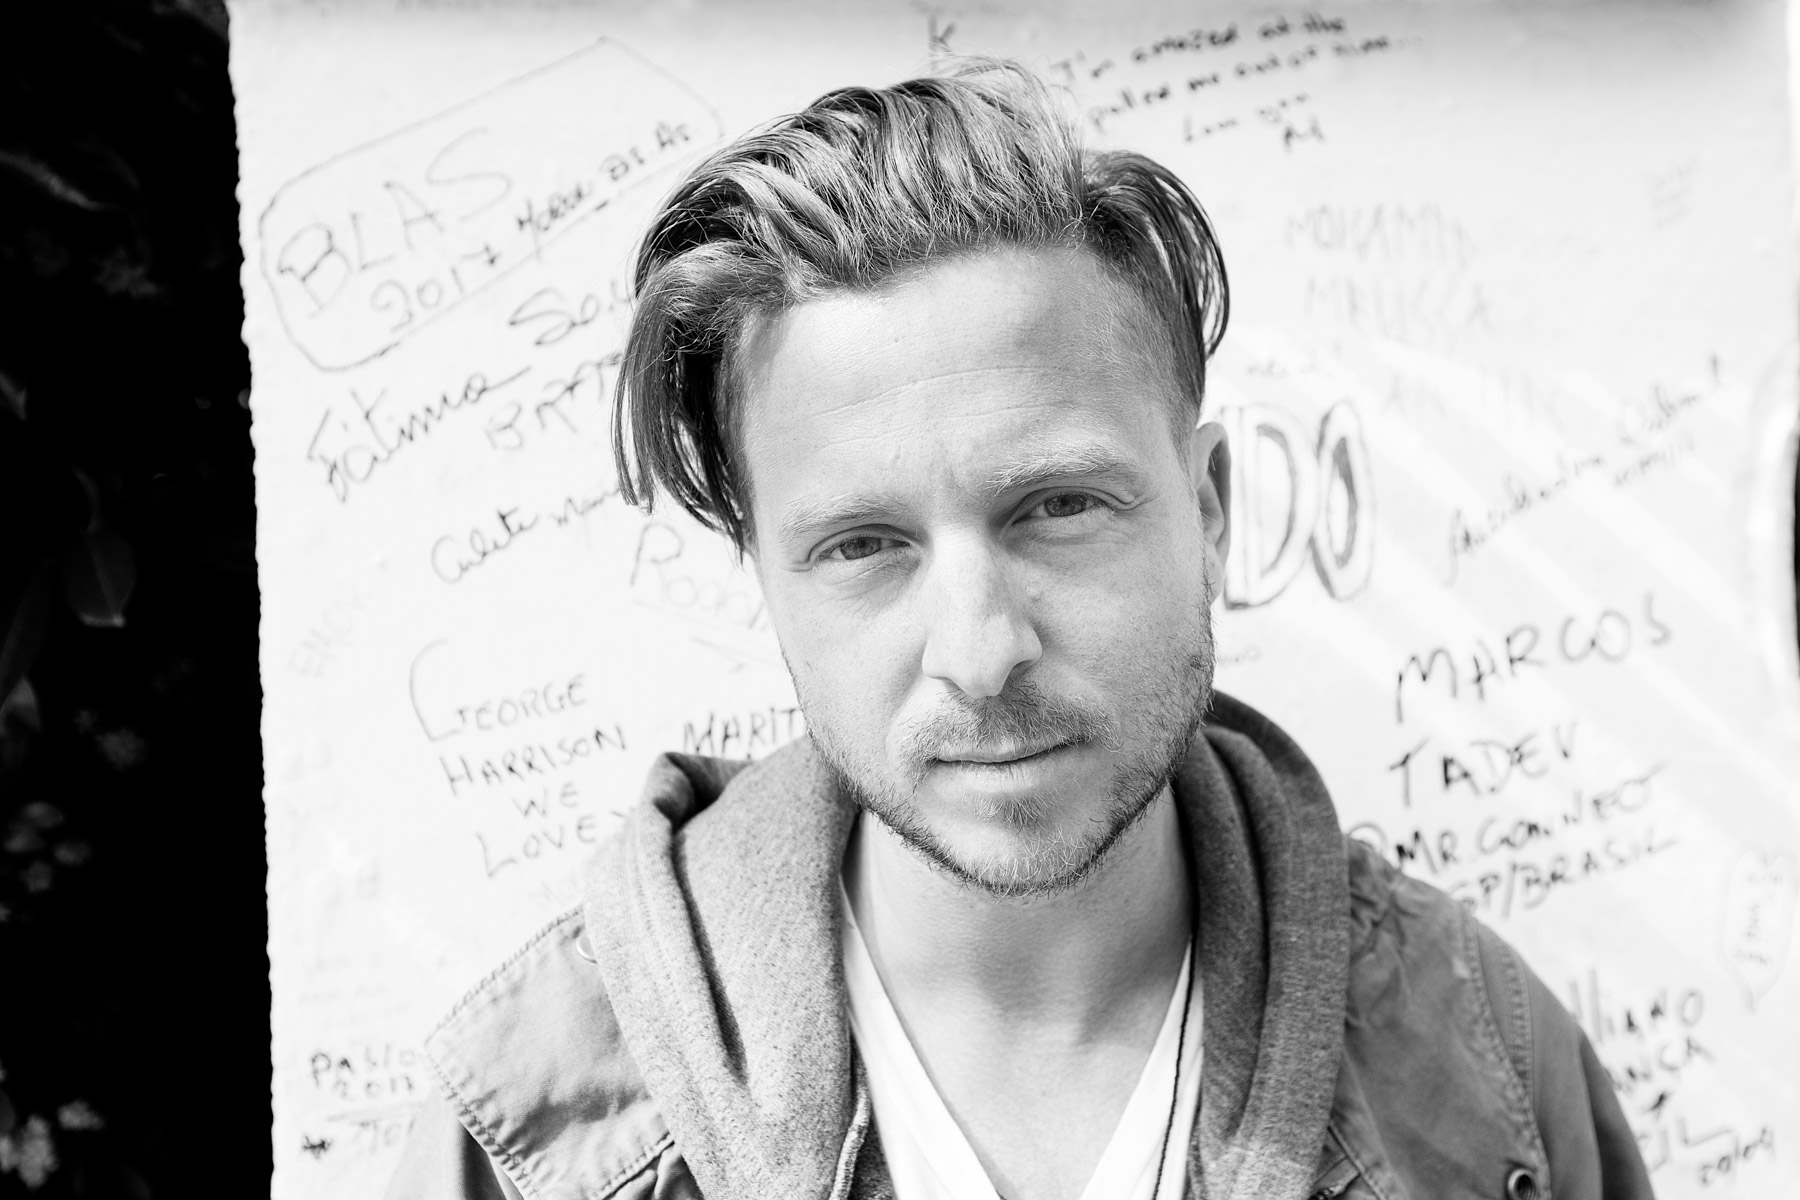 Ryan Tedder Hilton Spotify Live Nation Music Happens Here by Boston based commercial celebrity photographer Brian Nevins